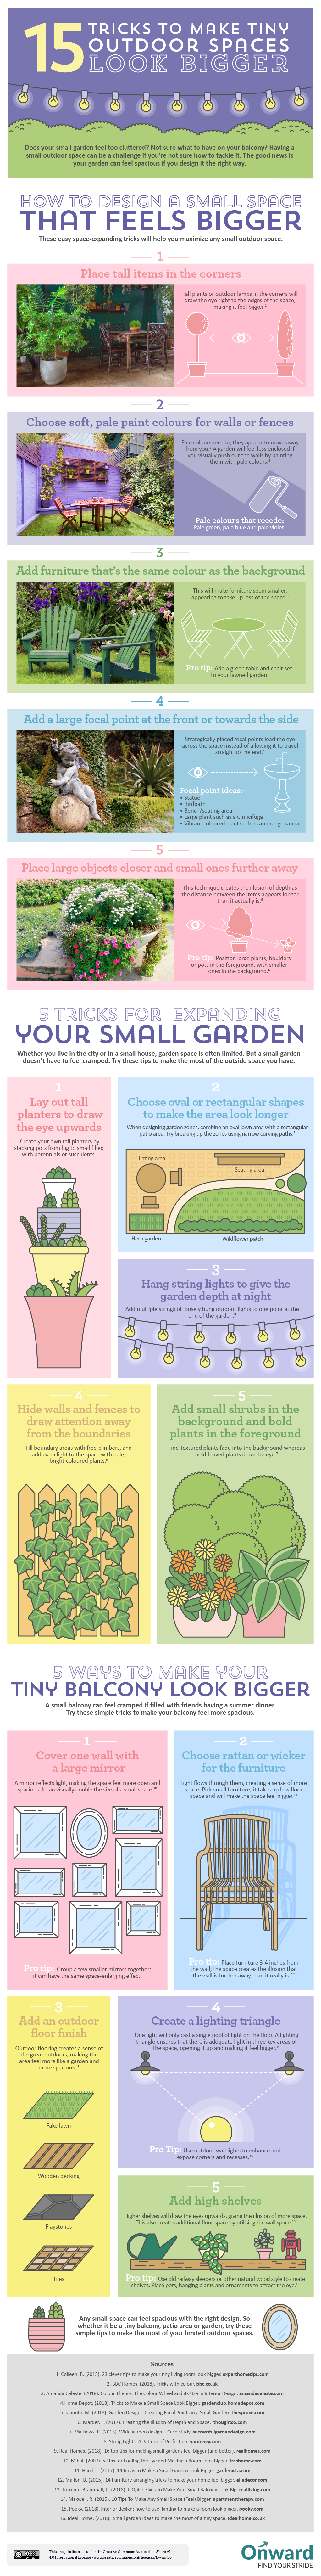 15 Tricks to Make Tiny Outdoor Spaces Look Bigger